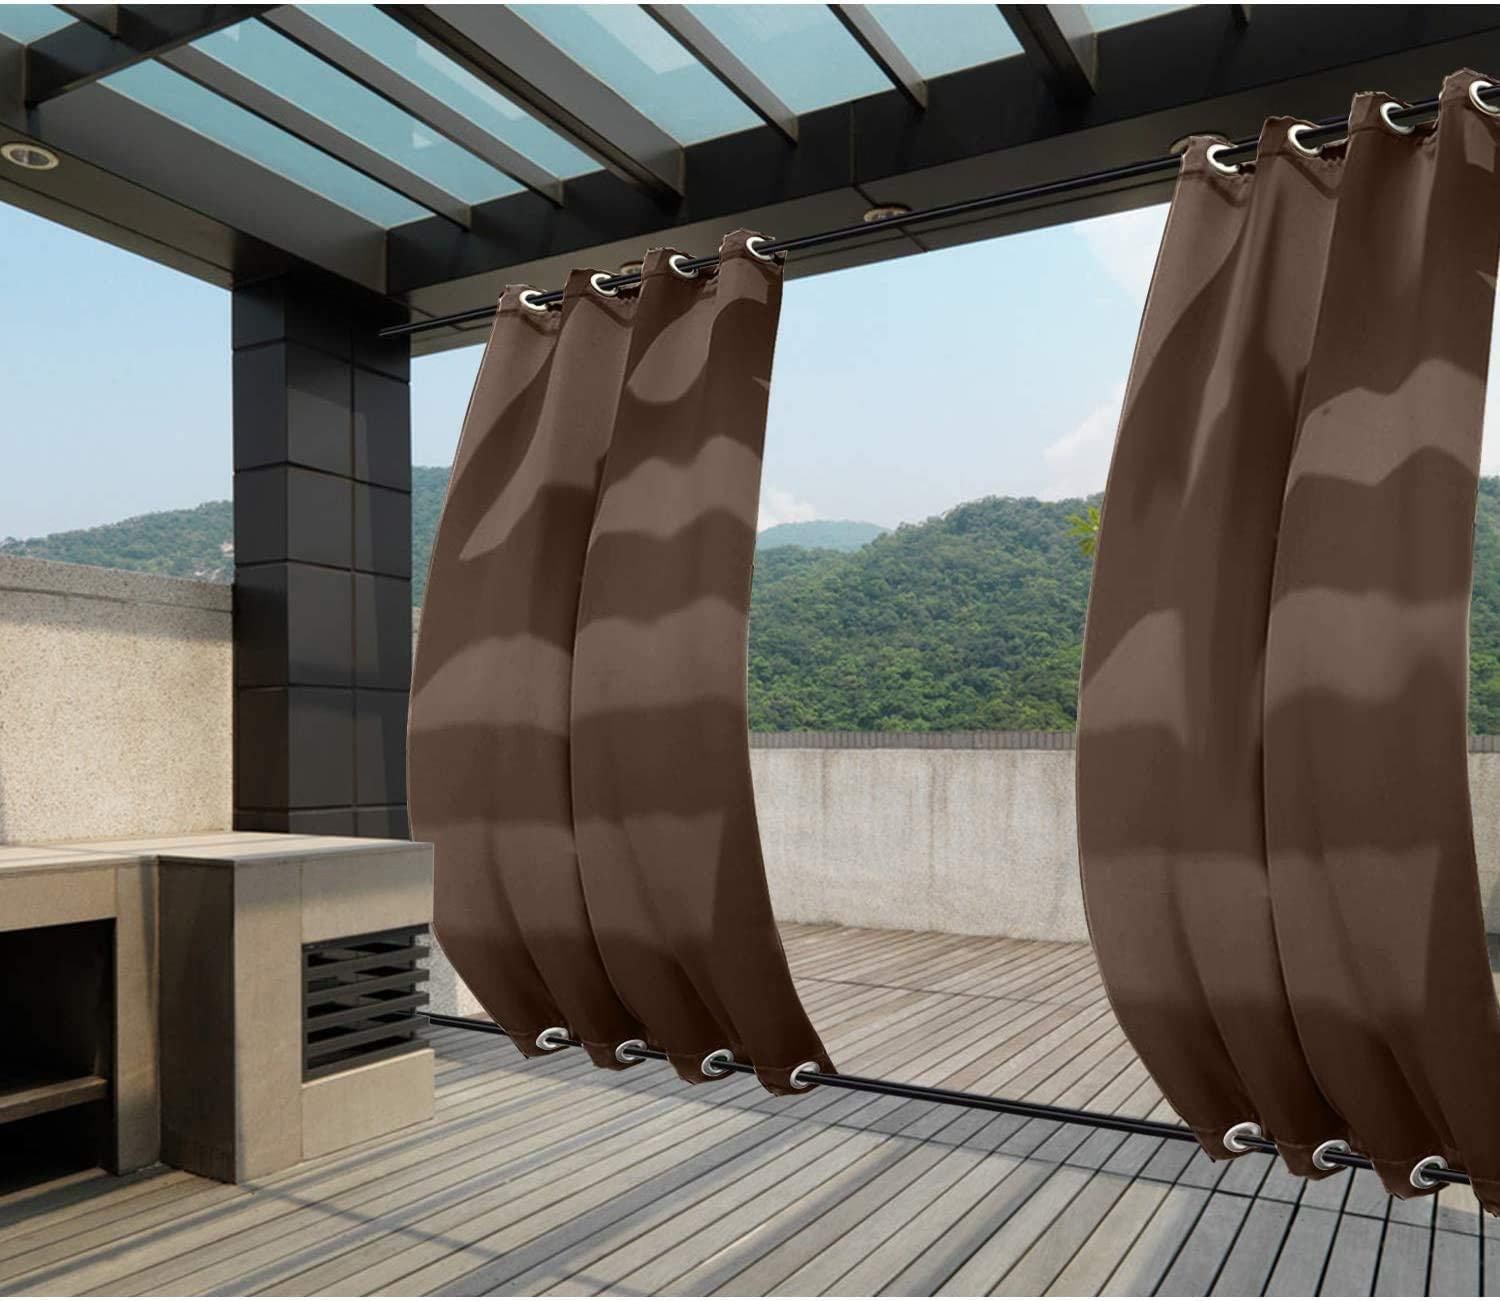 CHOiES record your inspired fashion Outdoor Waterproof Outdoor Curtain Panel for Patio Blackout Indoor//Outdoor Top and Bottom Grommet Curtain for Patio Porch Gazebo Garden Beige 1 Panel